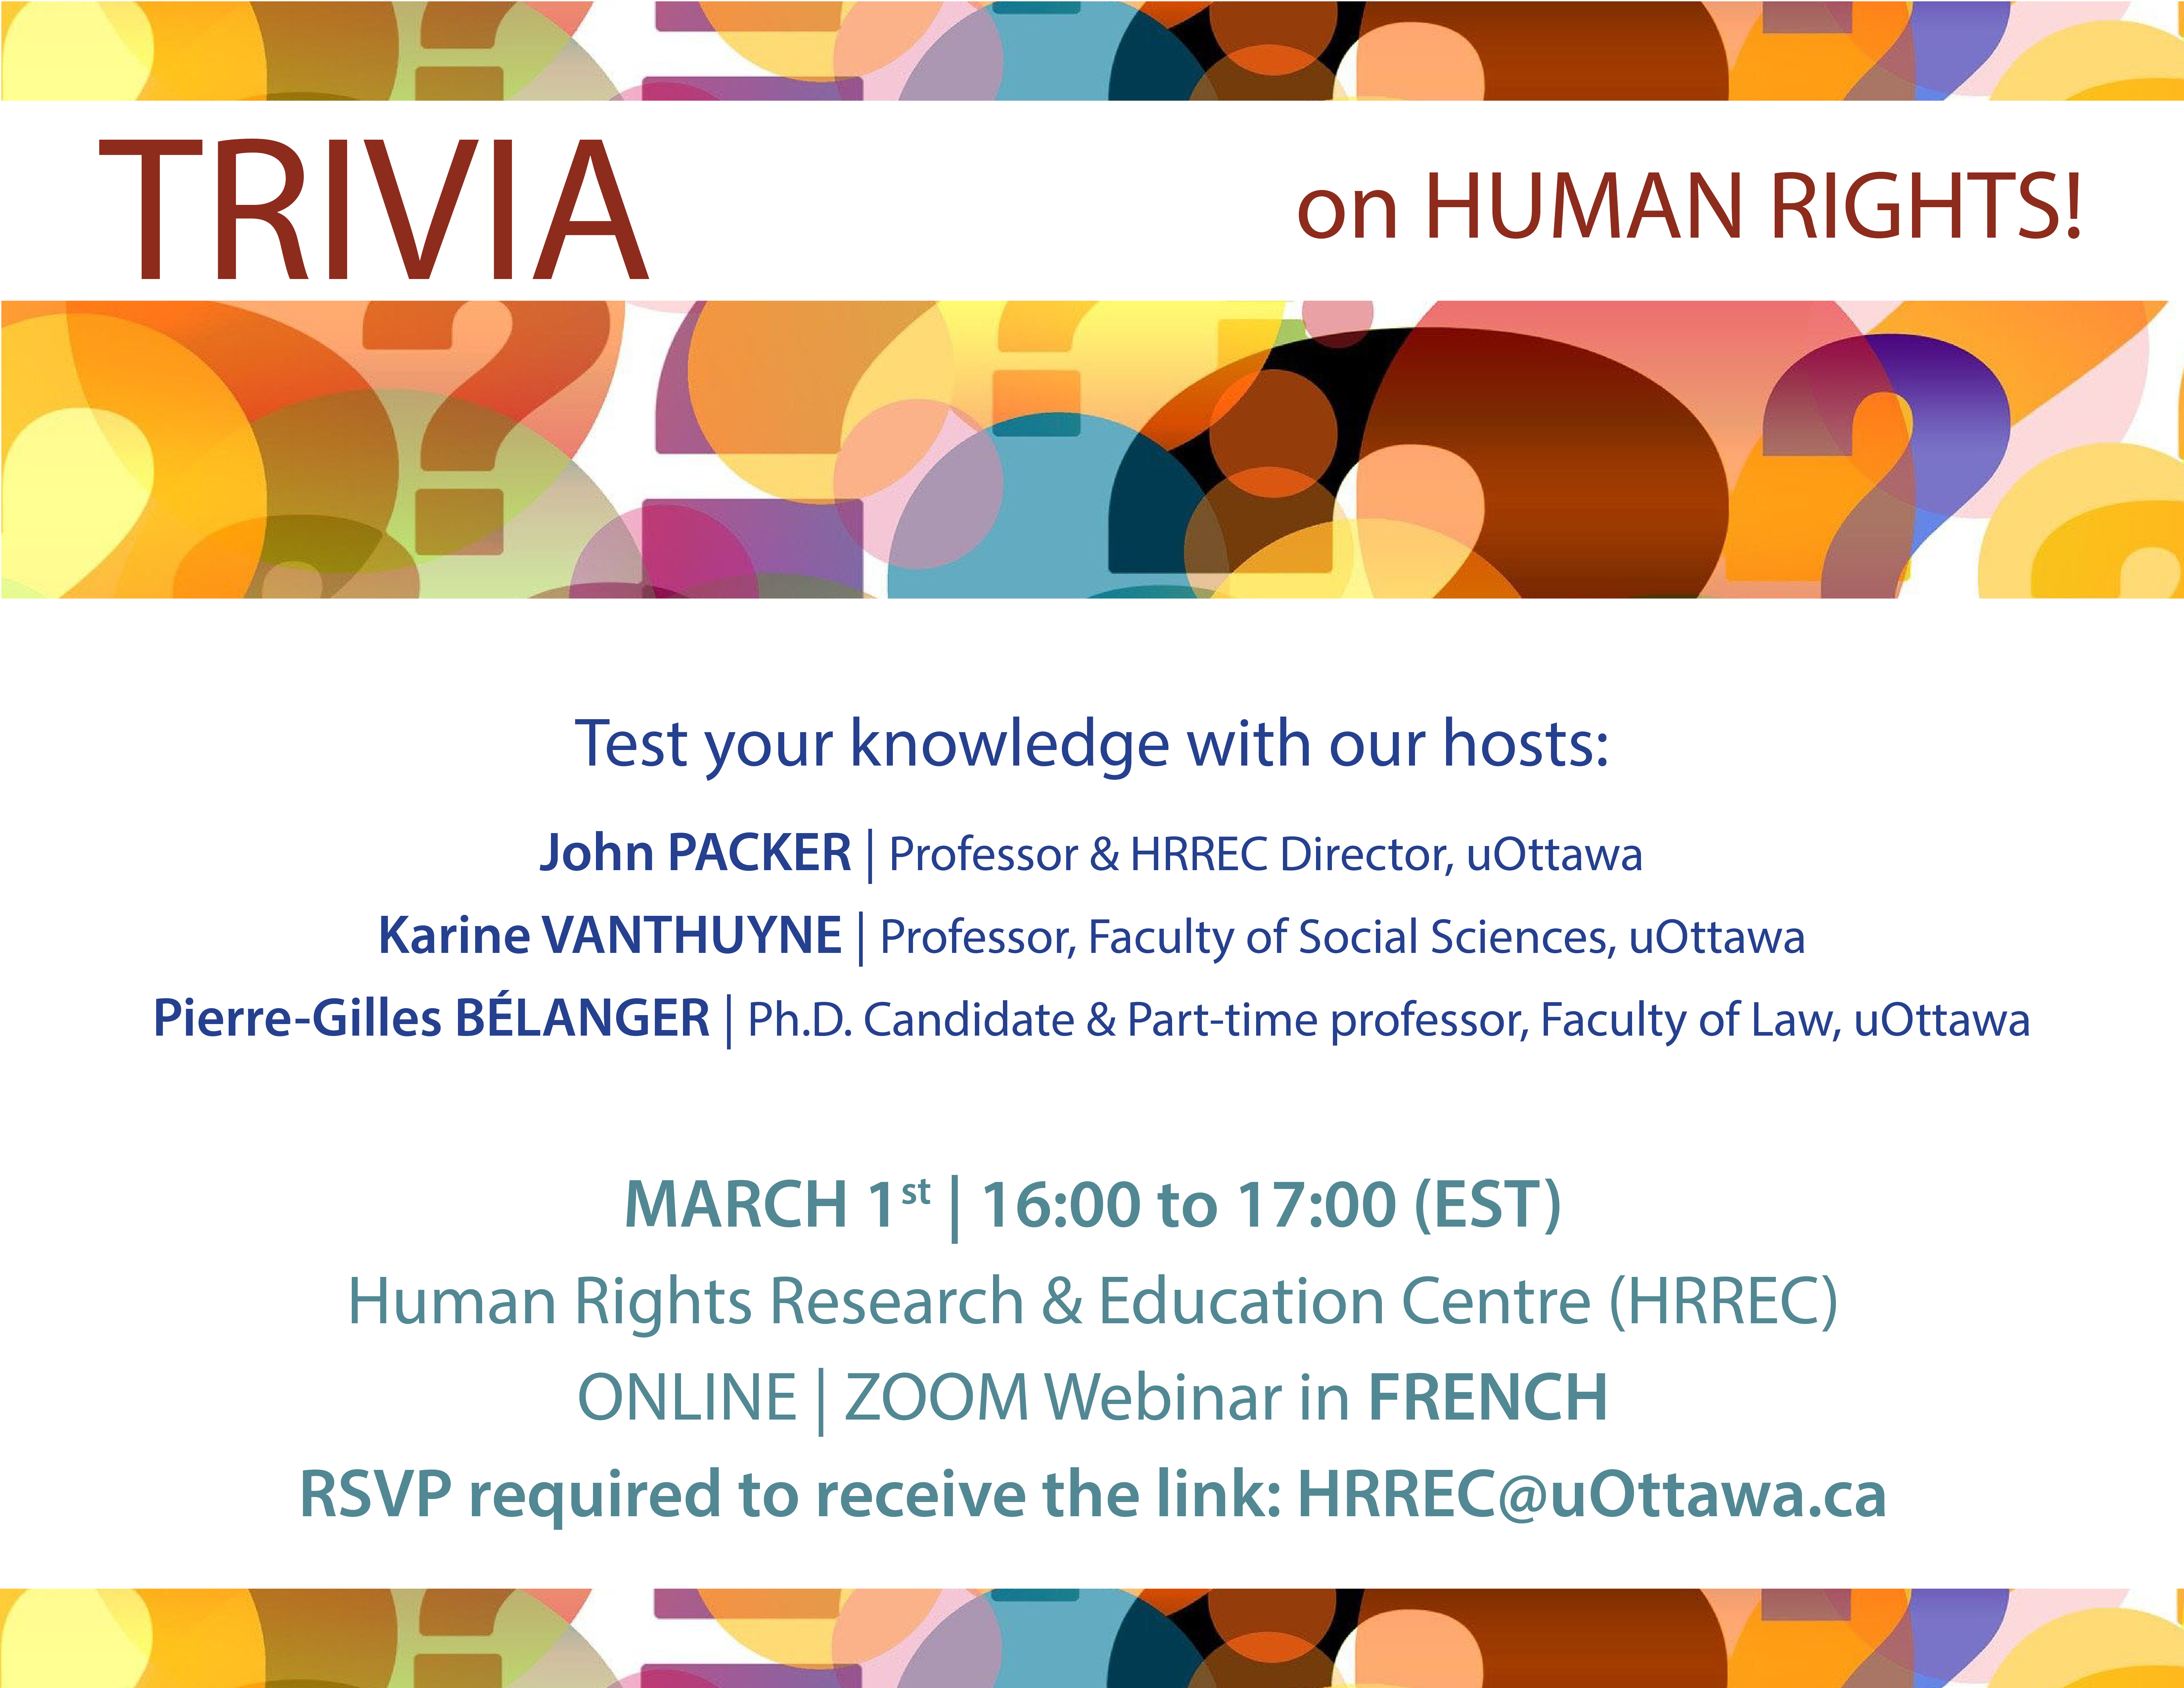 EVENT | TRIVIA on Human Rights!